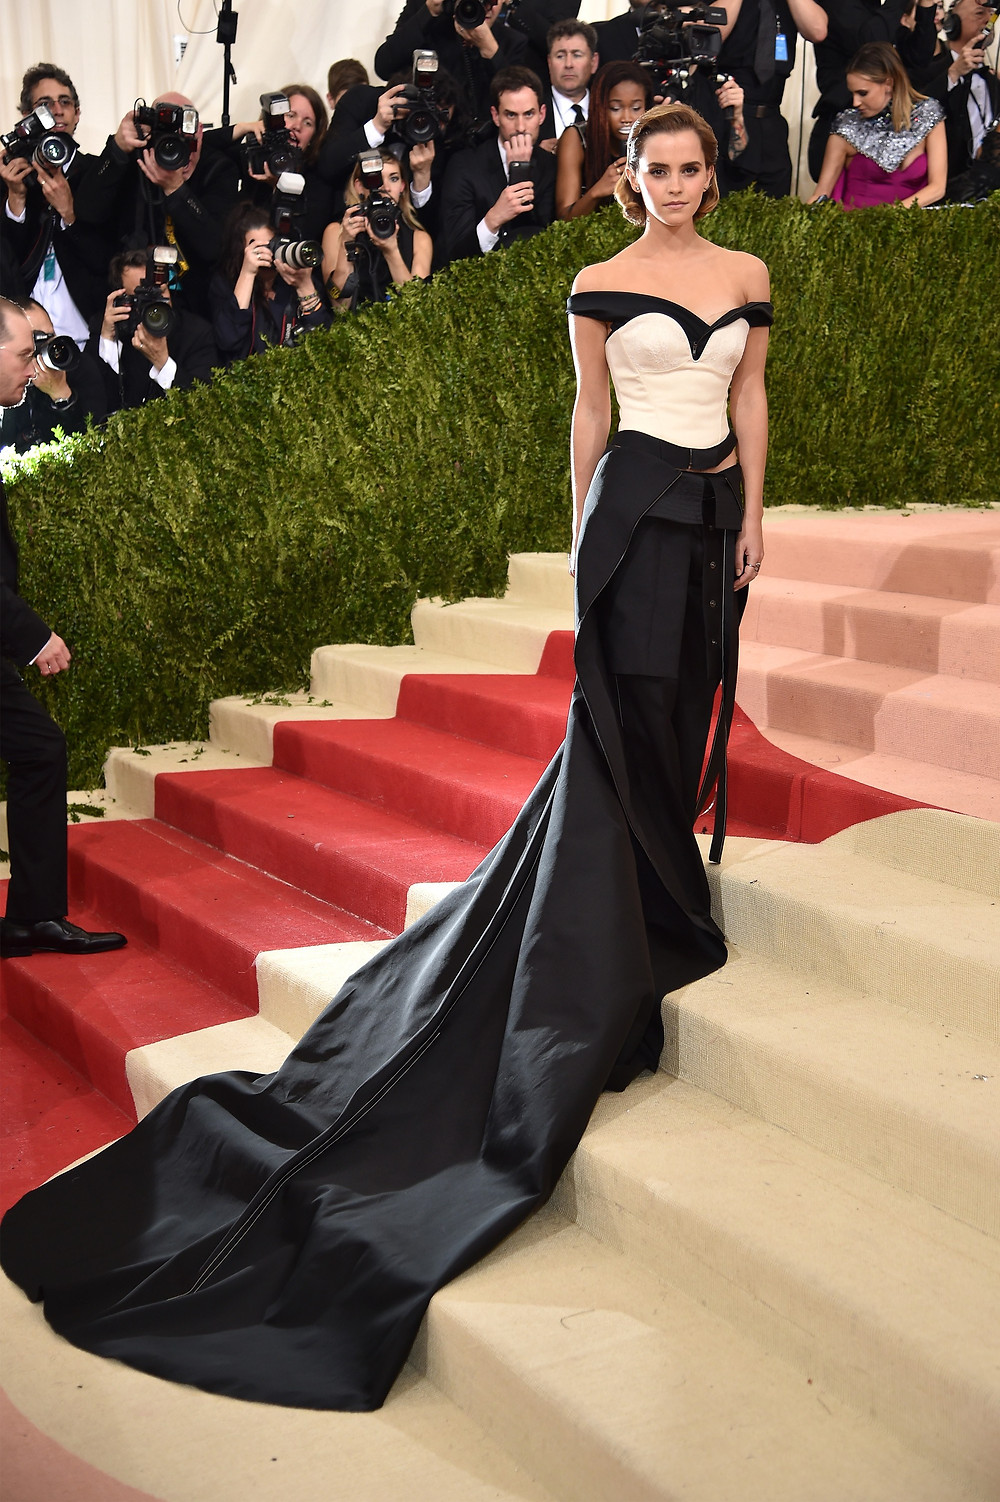 Emma Watson wearing the most beautiful trash you will ever see!